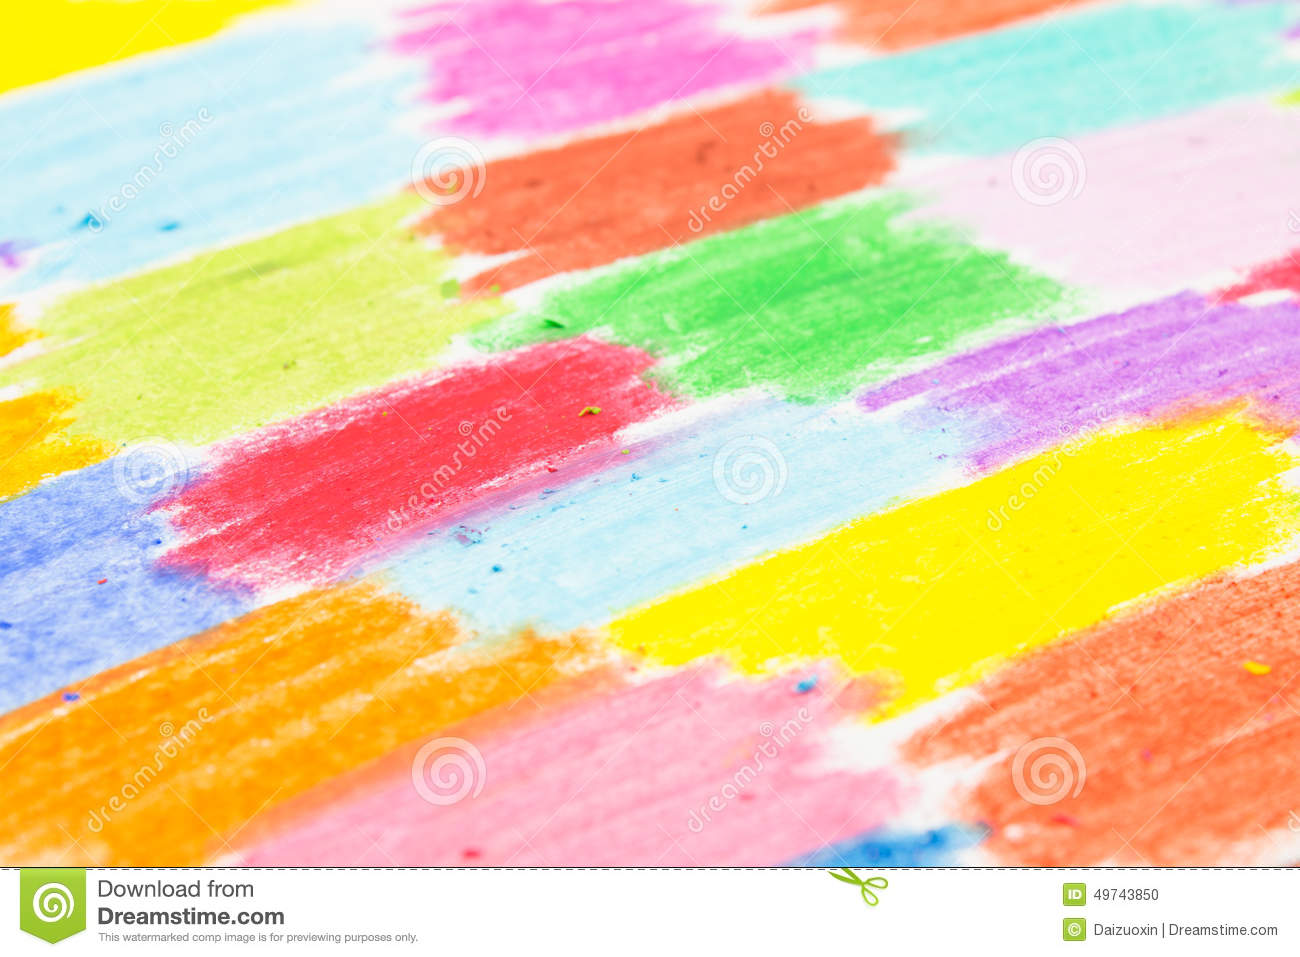 Crayon Scribble Drawing : Crayon scribble background stock photo image of color